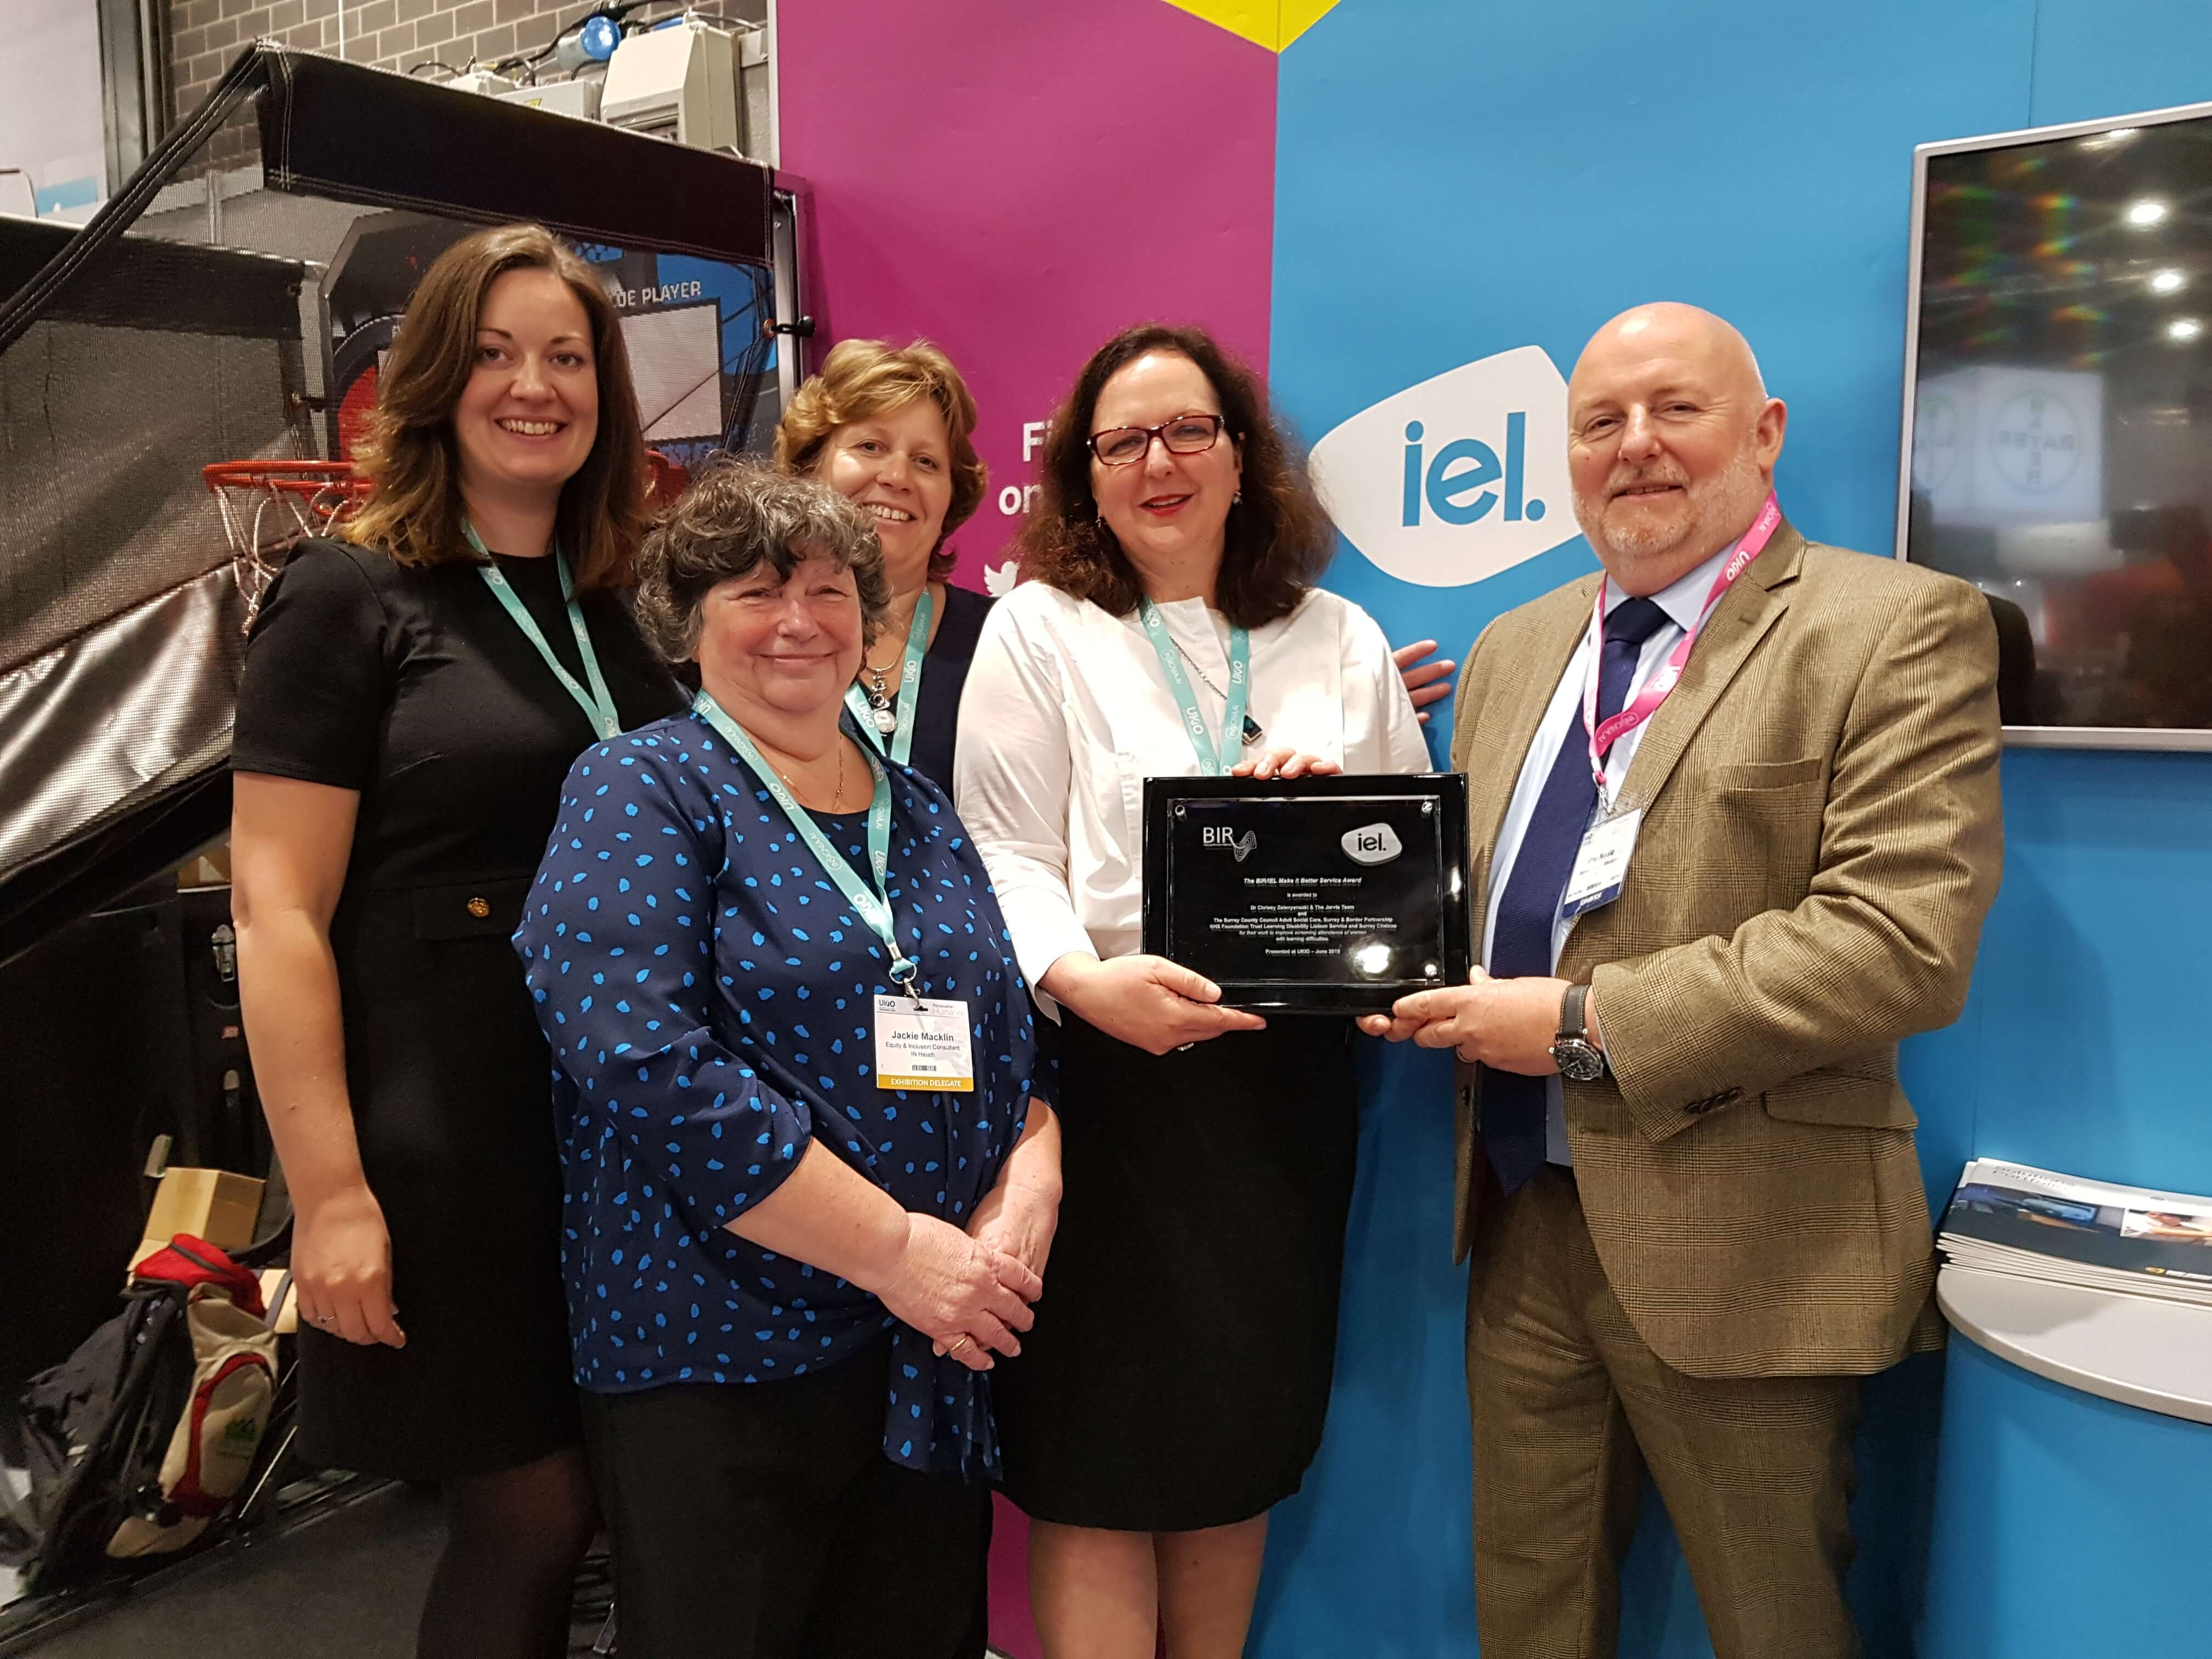 BIR/IEL Make it Better Award for breast screening project